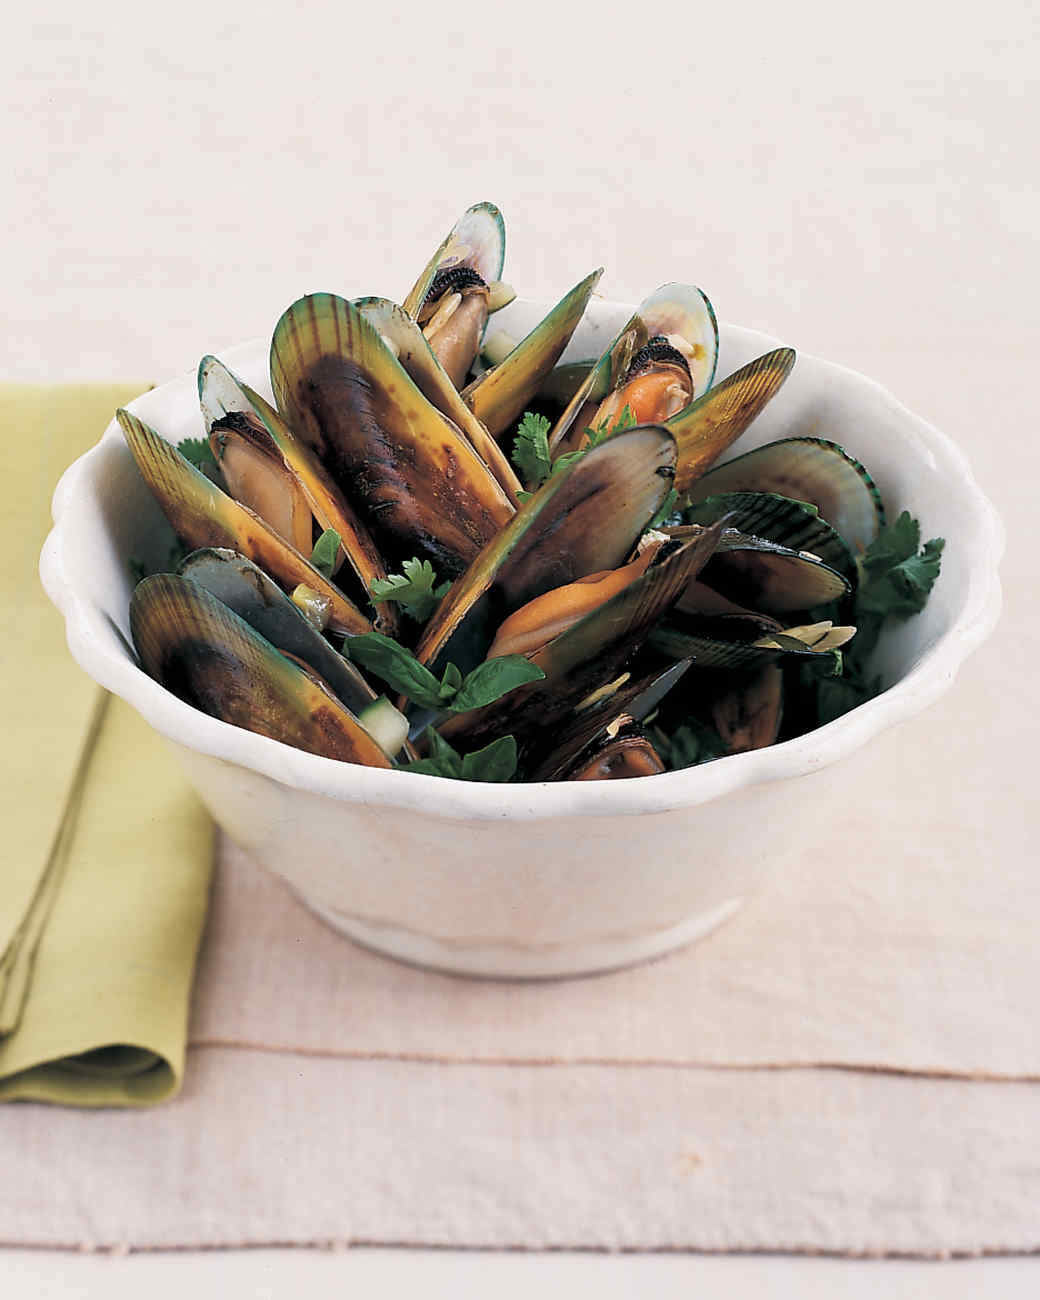 Mussels with Lime Juice and Mirin